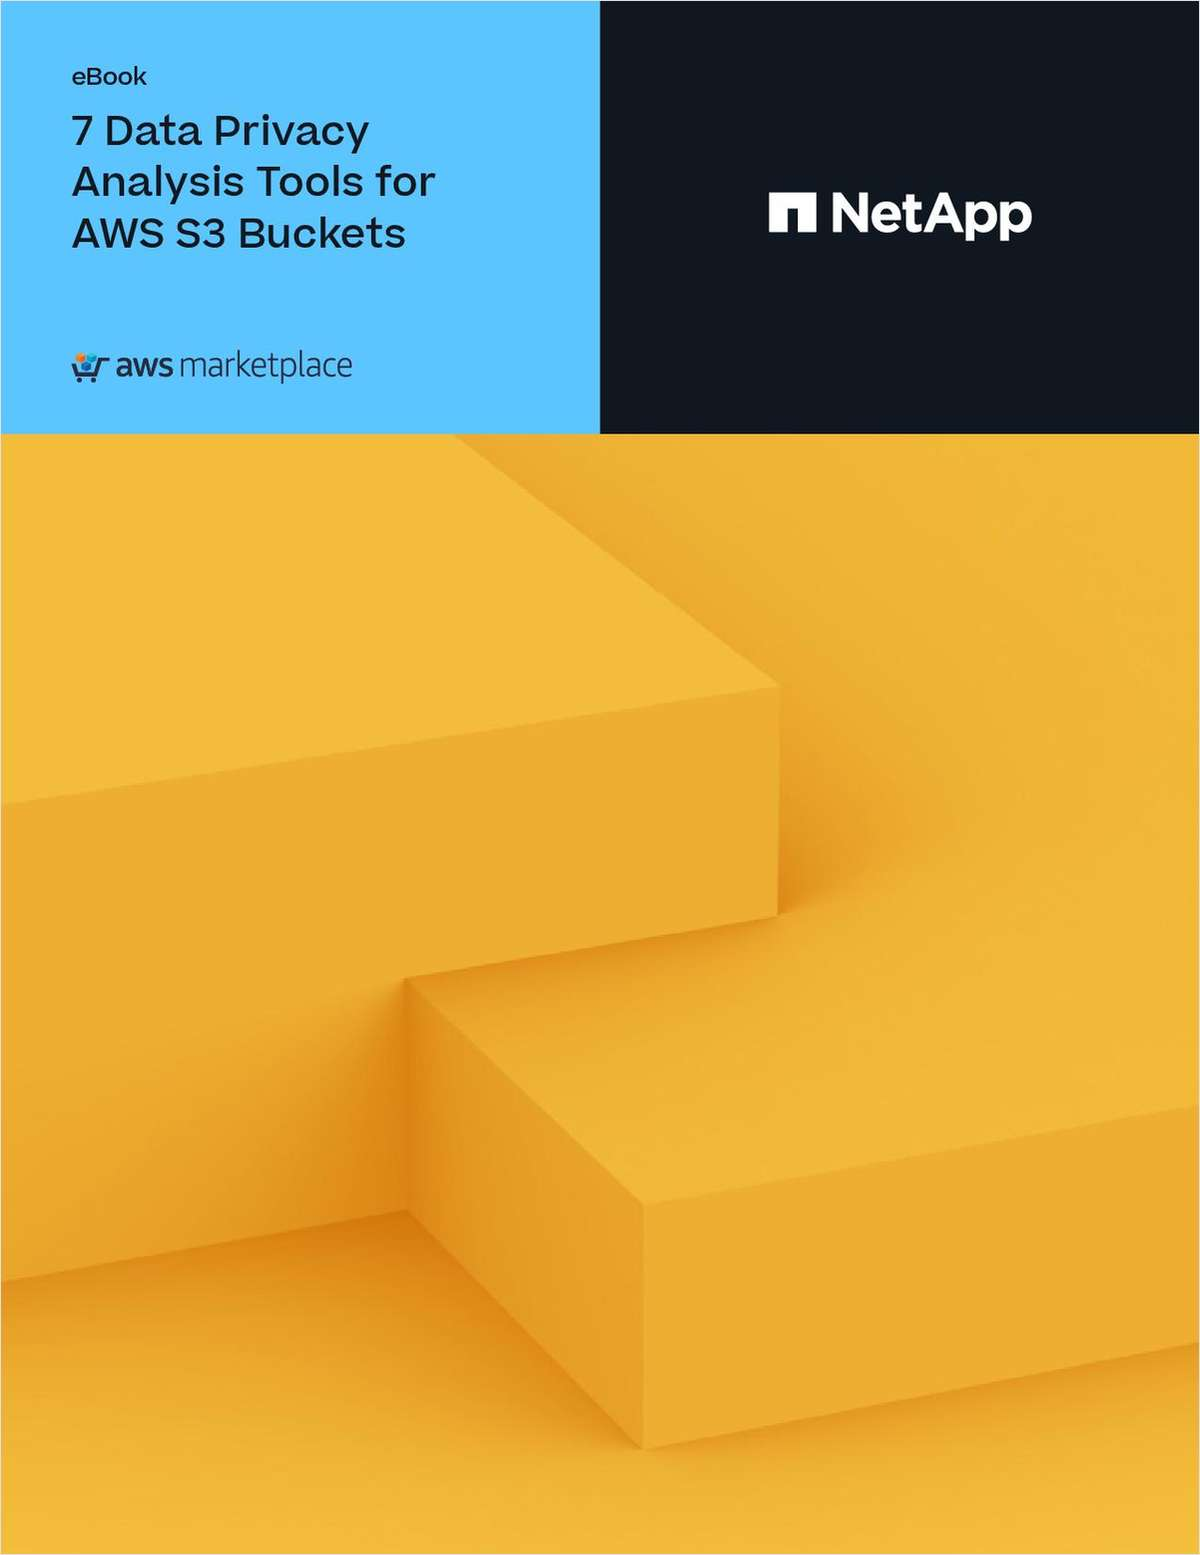 7 Data Privacy Analysis Tools for AWS S3 Bucket